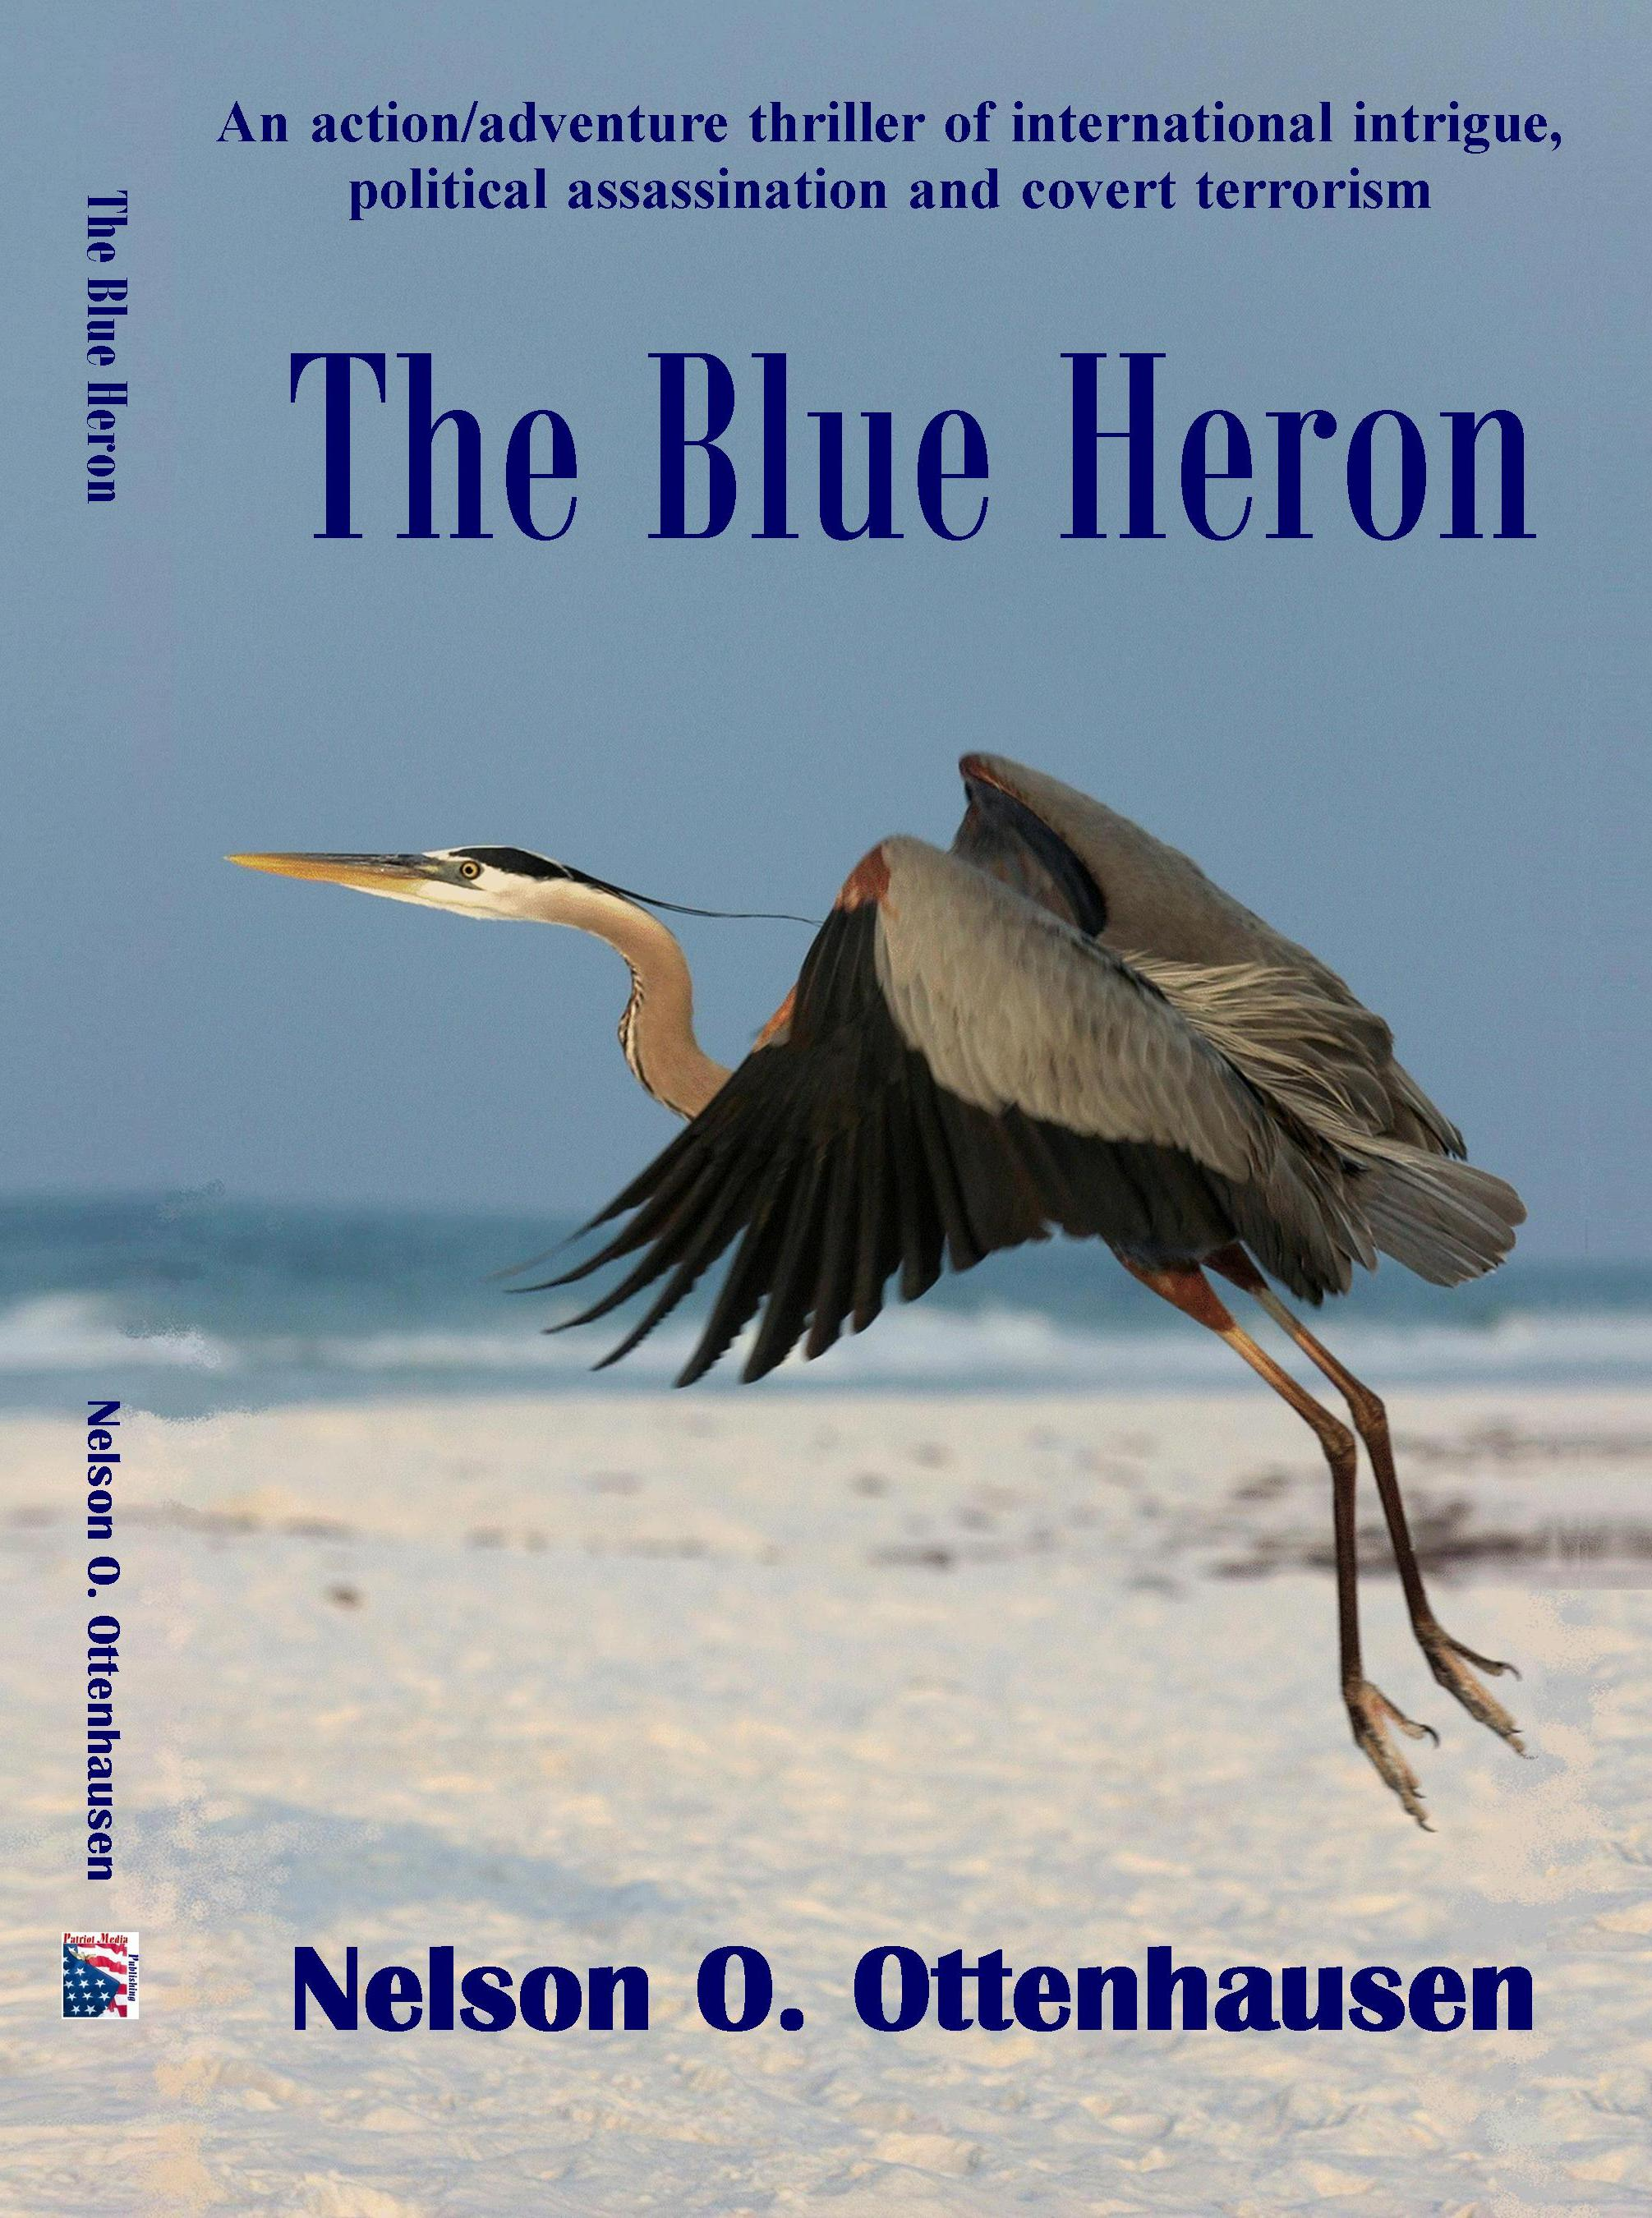 The Blue Heron by Nelson Ottenhausen